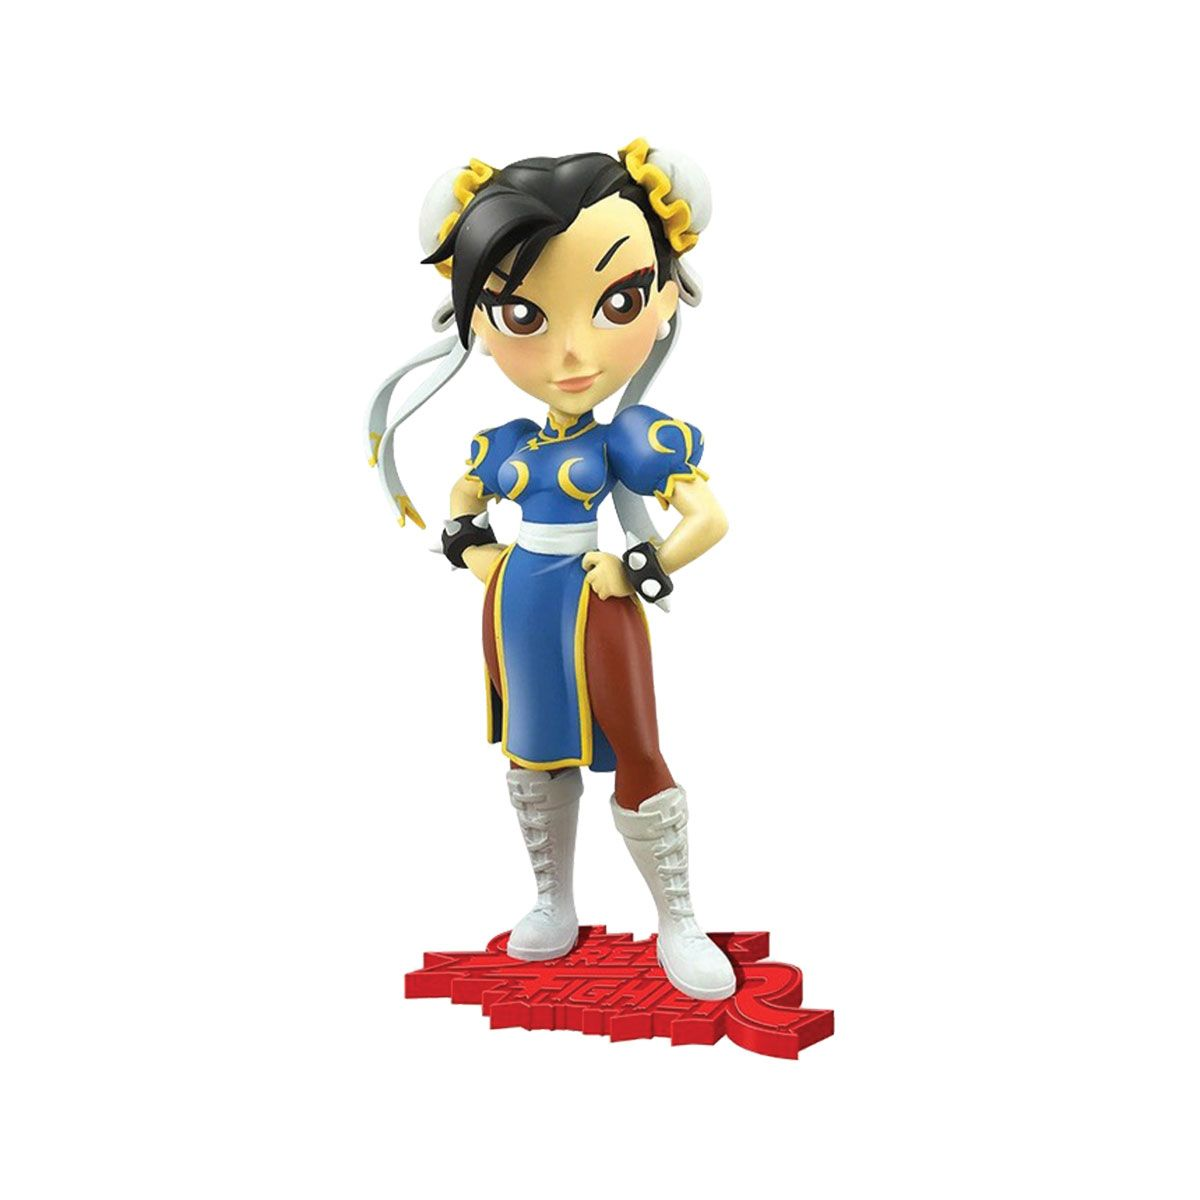 Chun-Li Street Fighter Knockouts Series 1 Figure Cryptozoic